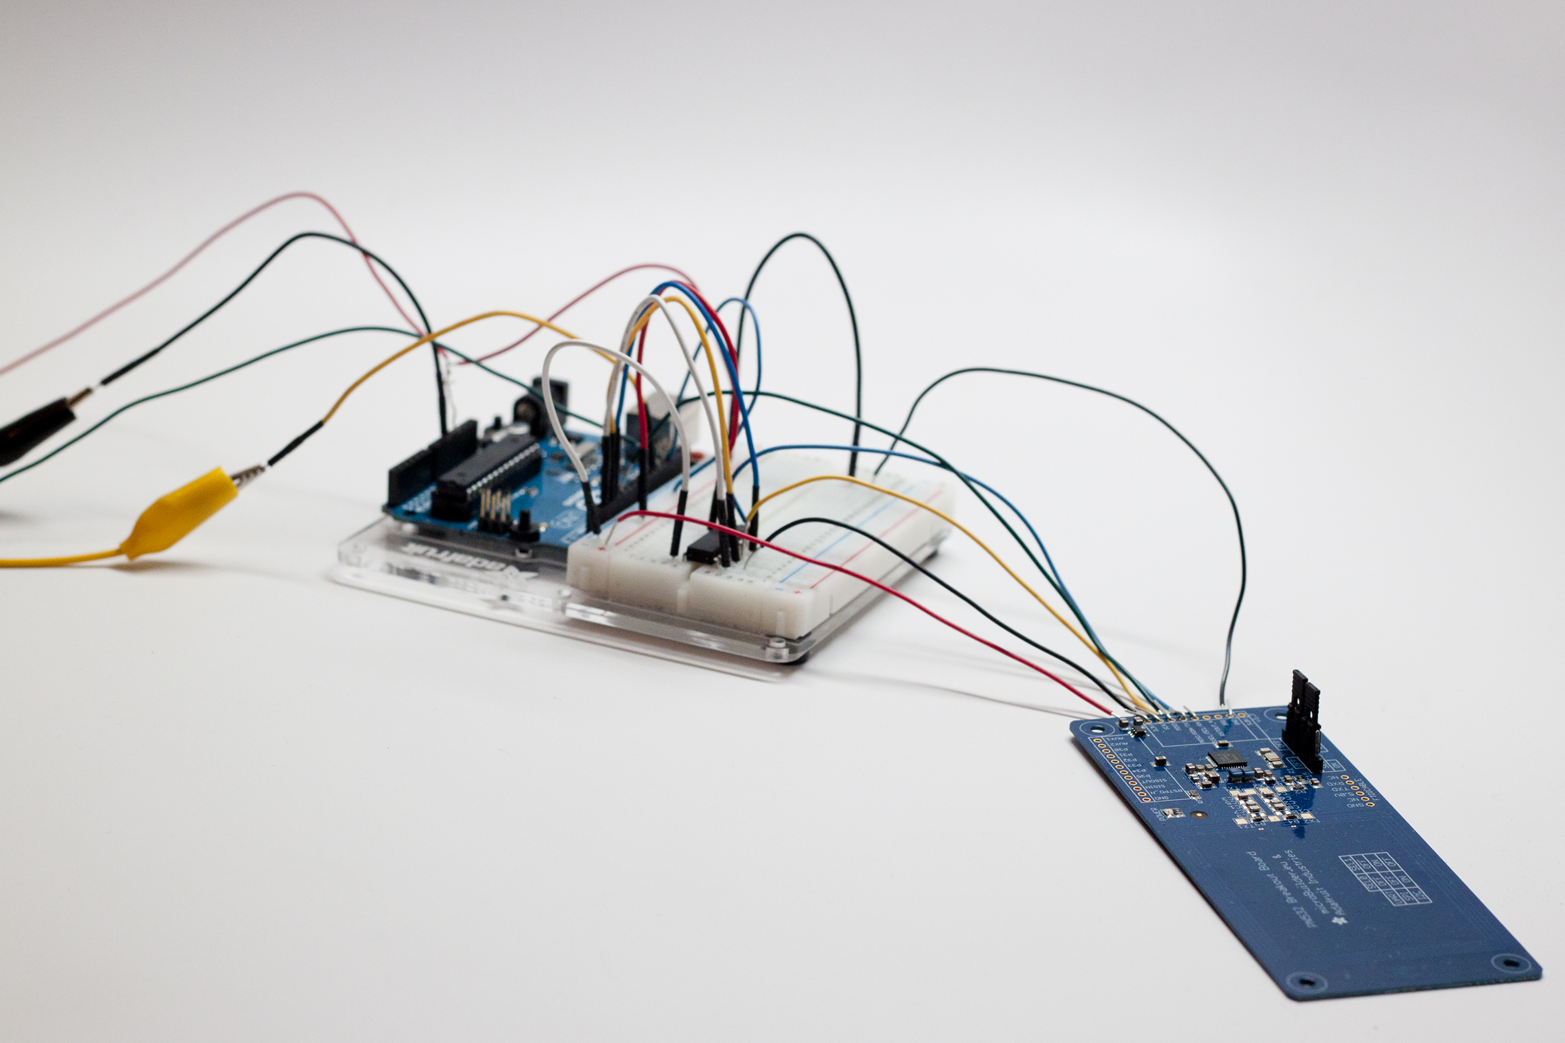 Component prototypes test high-level assumptions about which electronic parts are necessary for the product